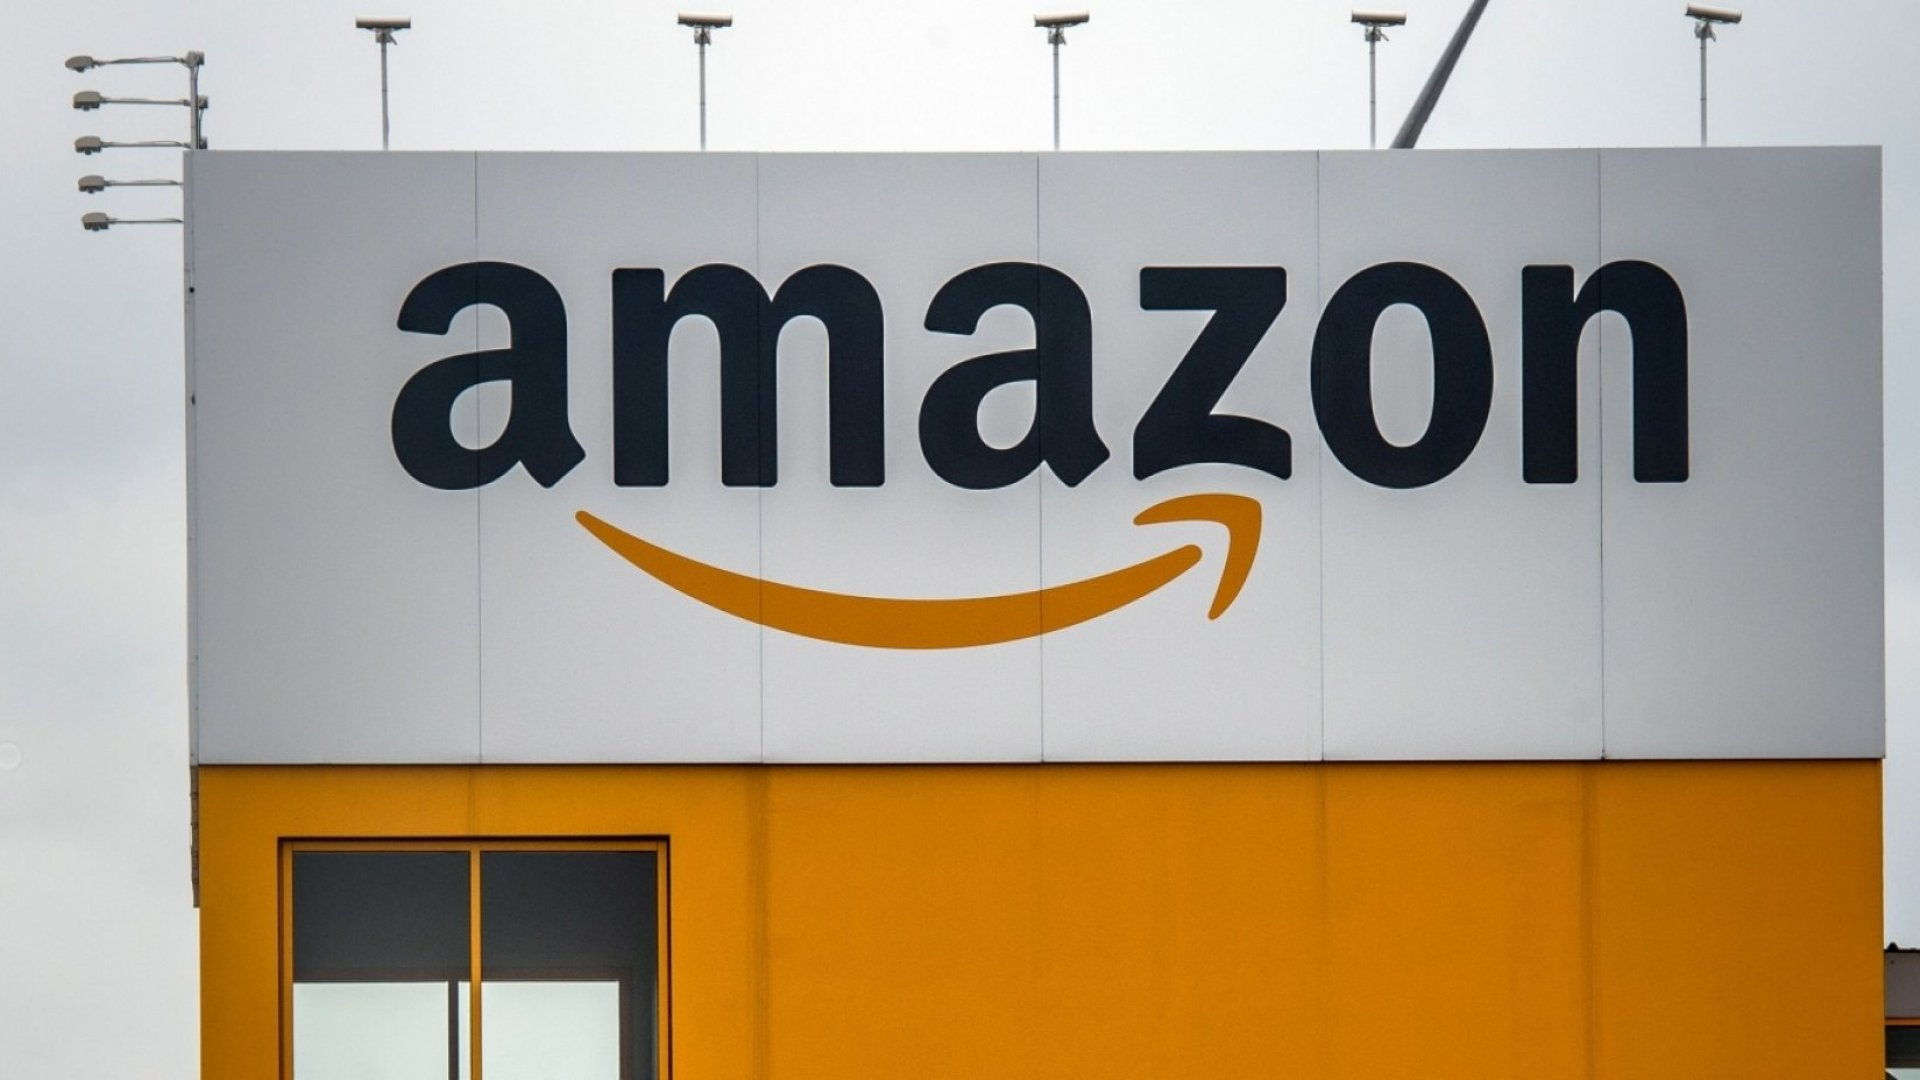 Amazon's HQ2: Let the Backlash Begin. (Starting With the 235 Communities Amazon Just Said Weren't Good Enough)